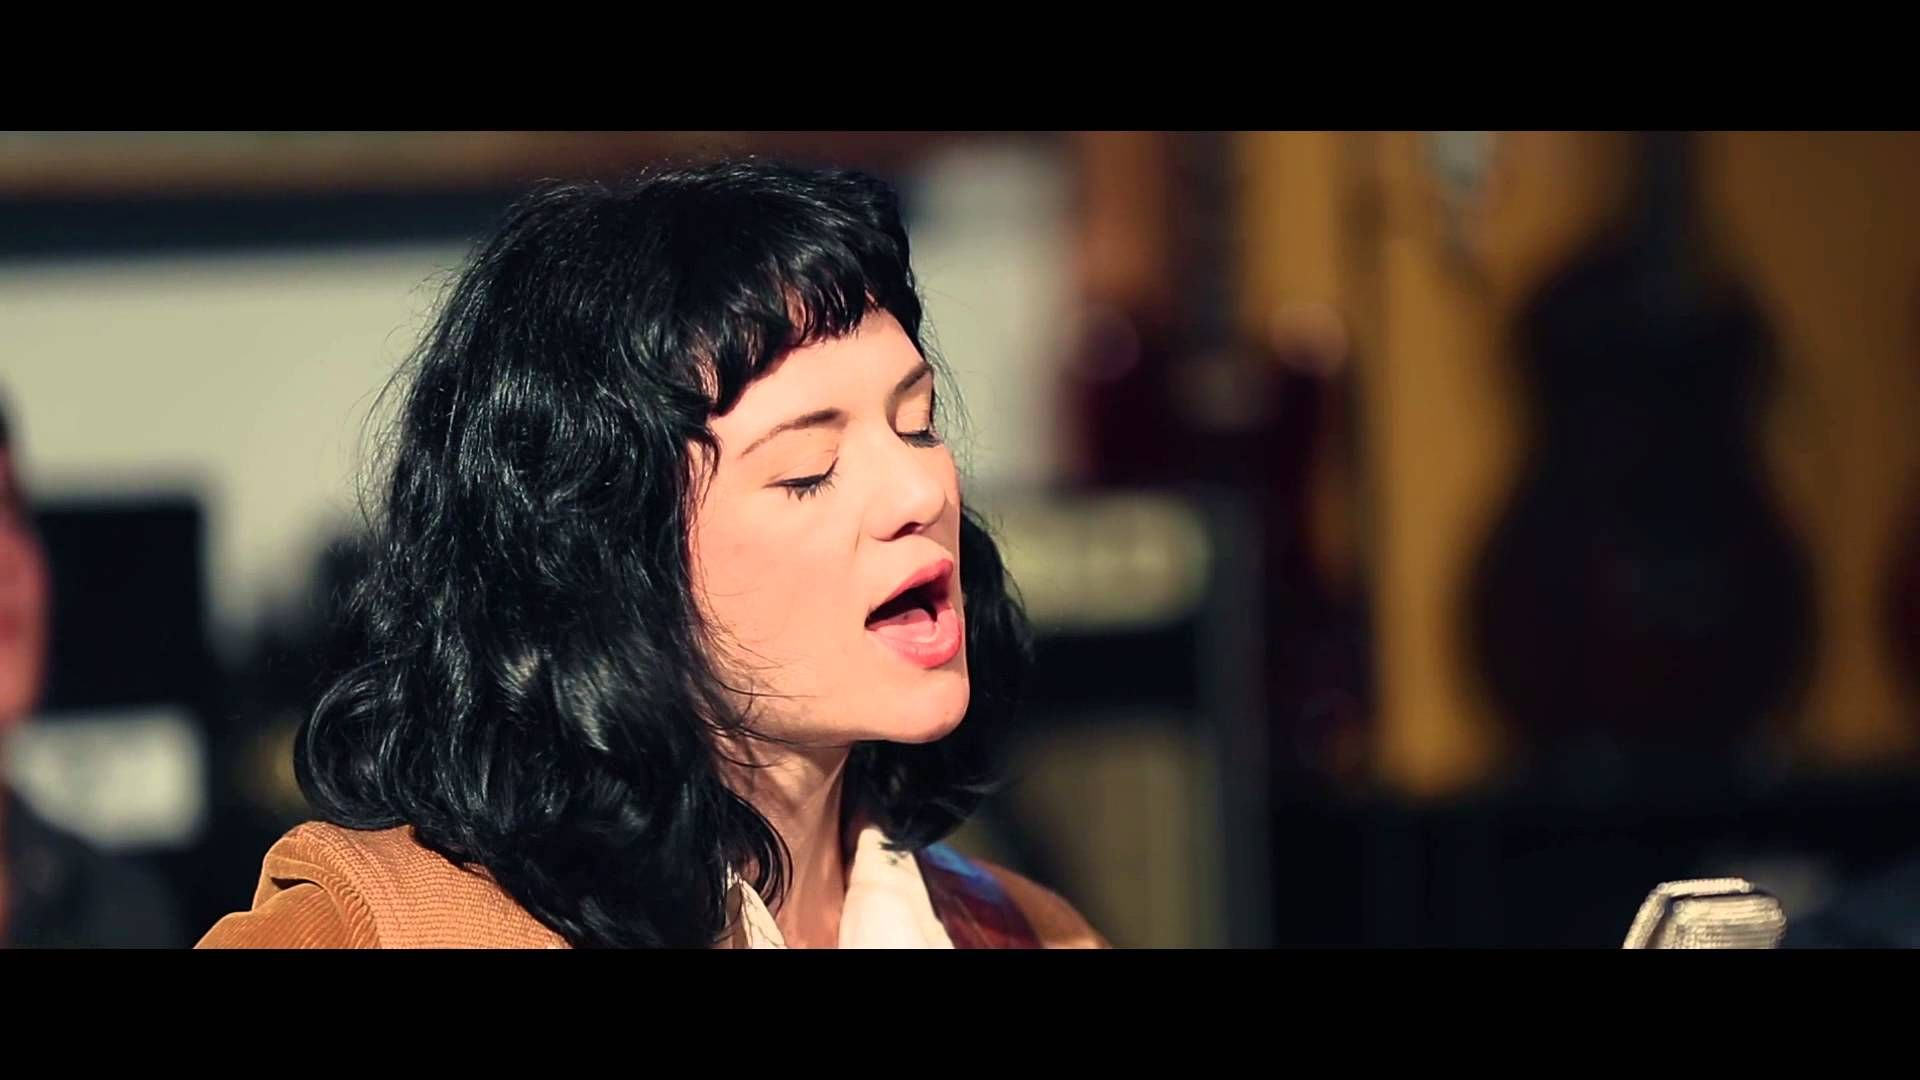 Nikki Lane - You Can't Talk To Me Like That